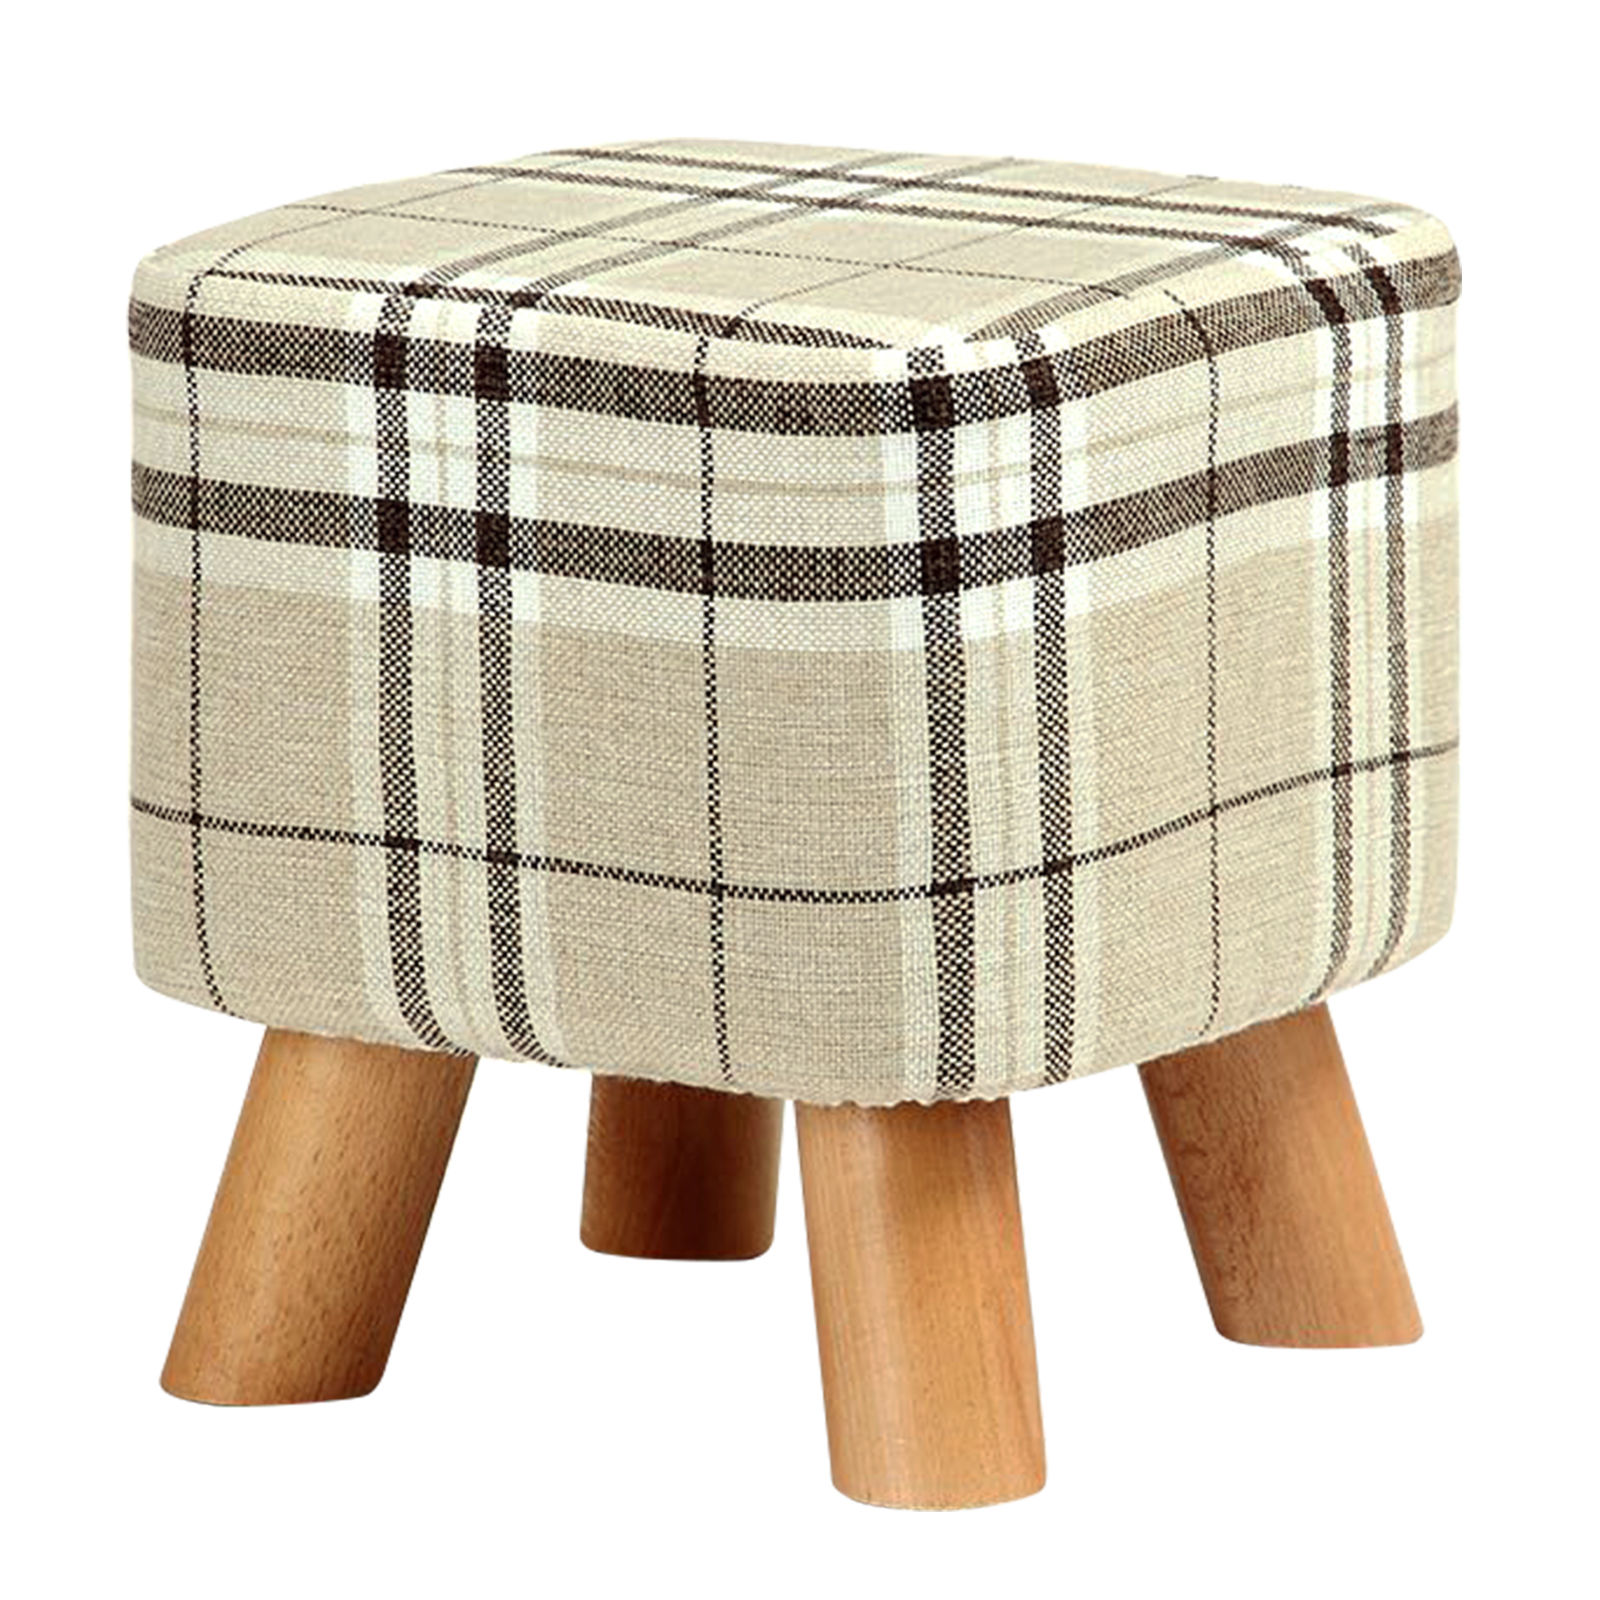 6 Styles Robust And stable Stool Modern Luxury Upholstered Footstool Round Wooden Stool + Natureal linen Cover mi learning styles